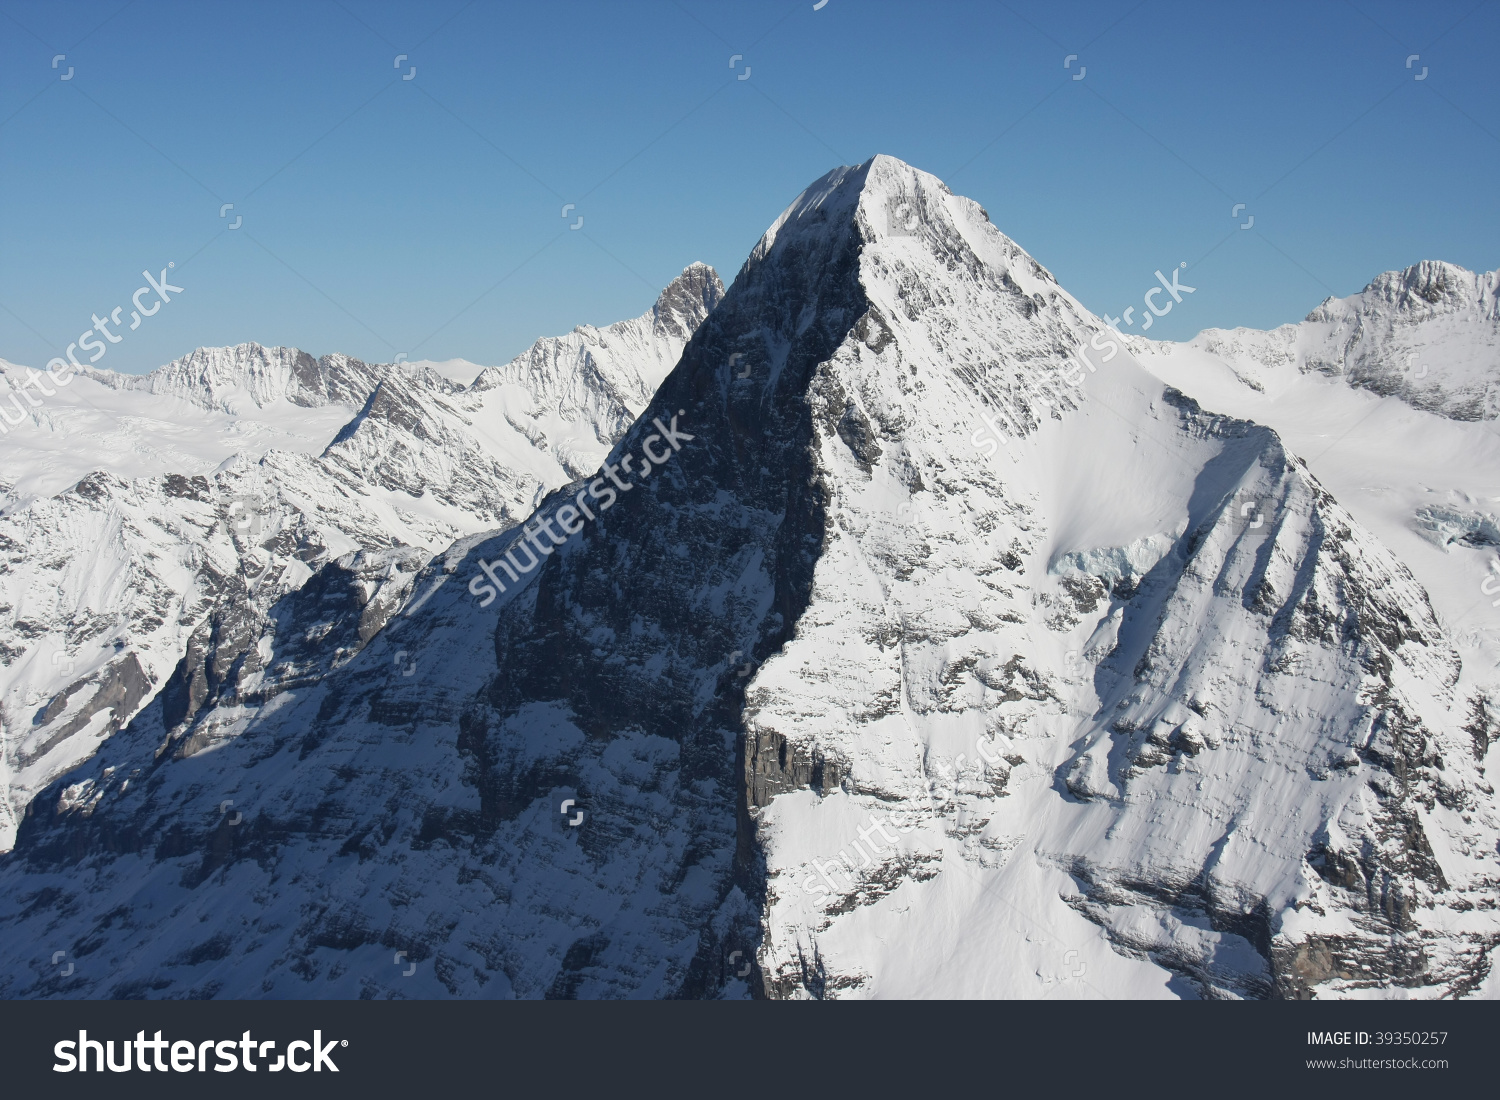 Eiger North Face, Swiss Alps Stock Photo 39350257 : Shutterstock.